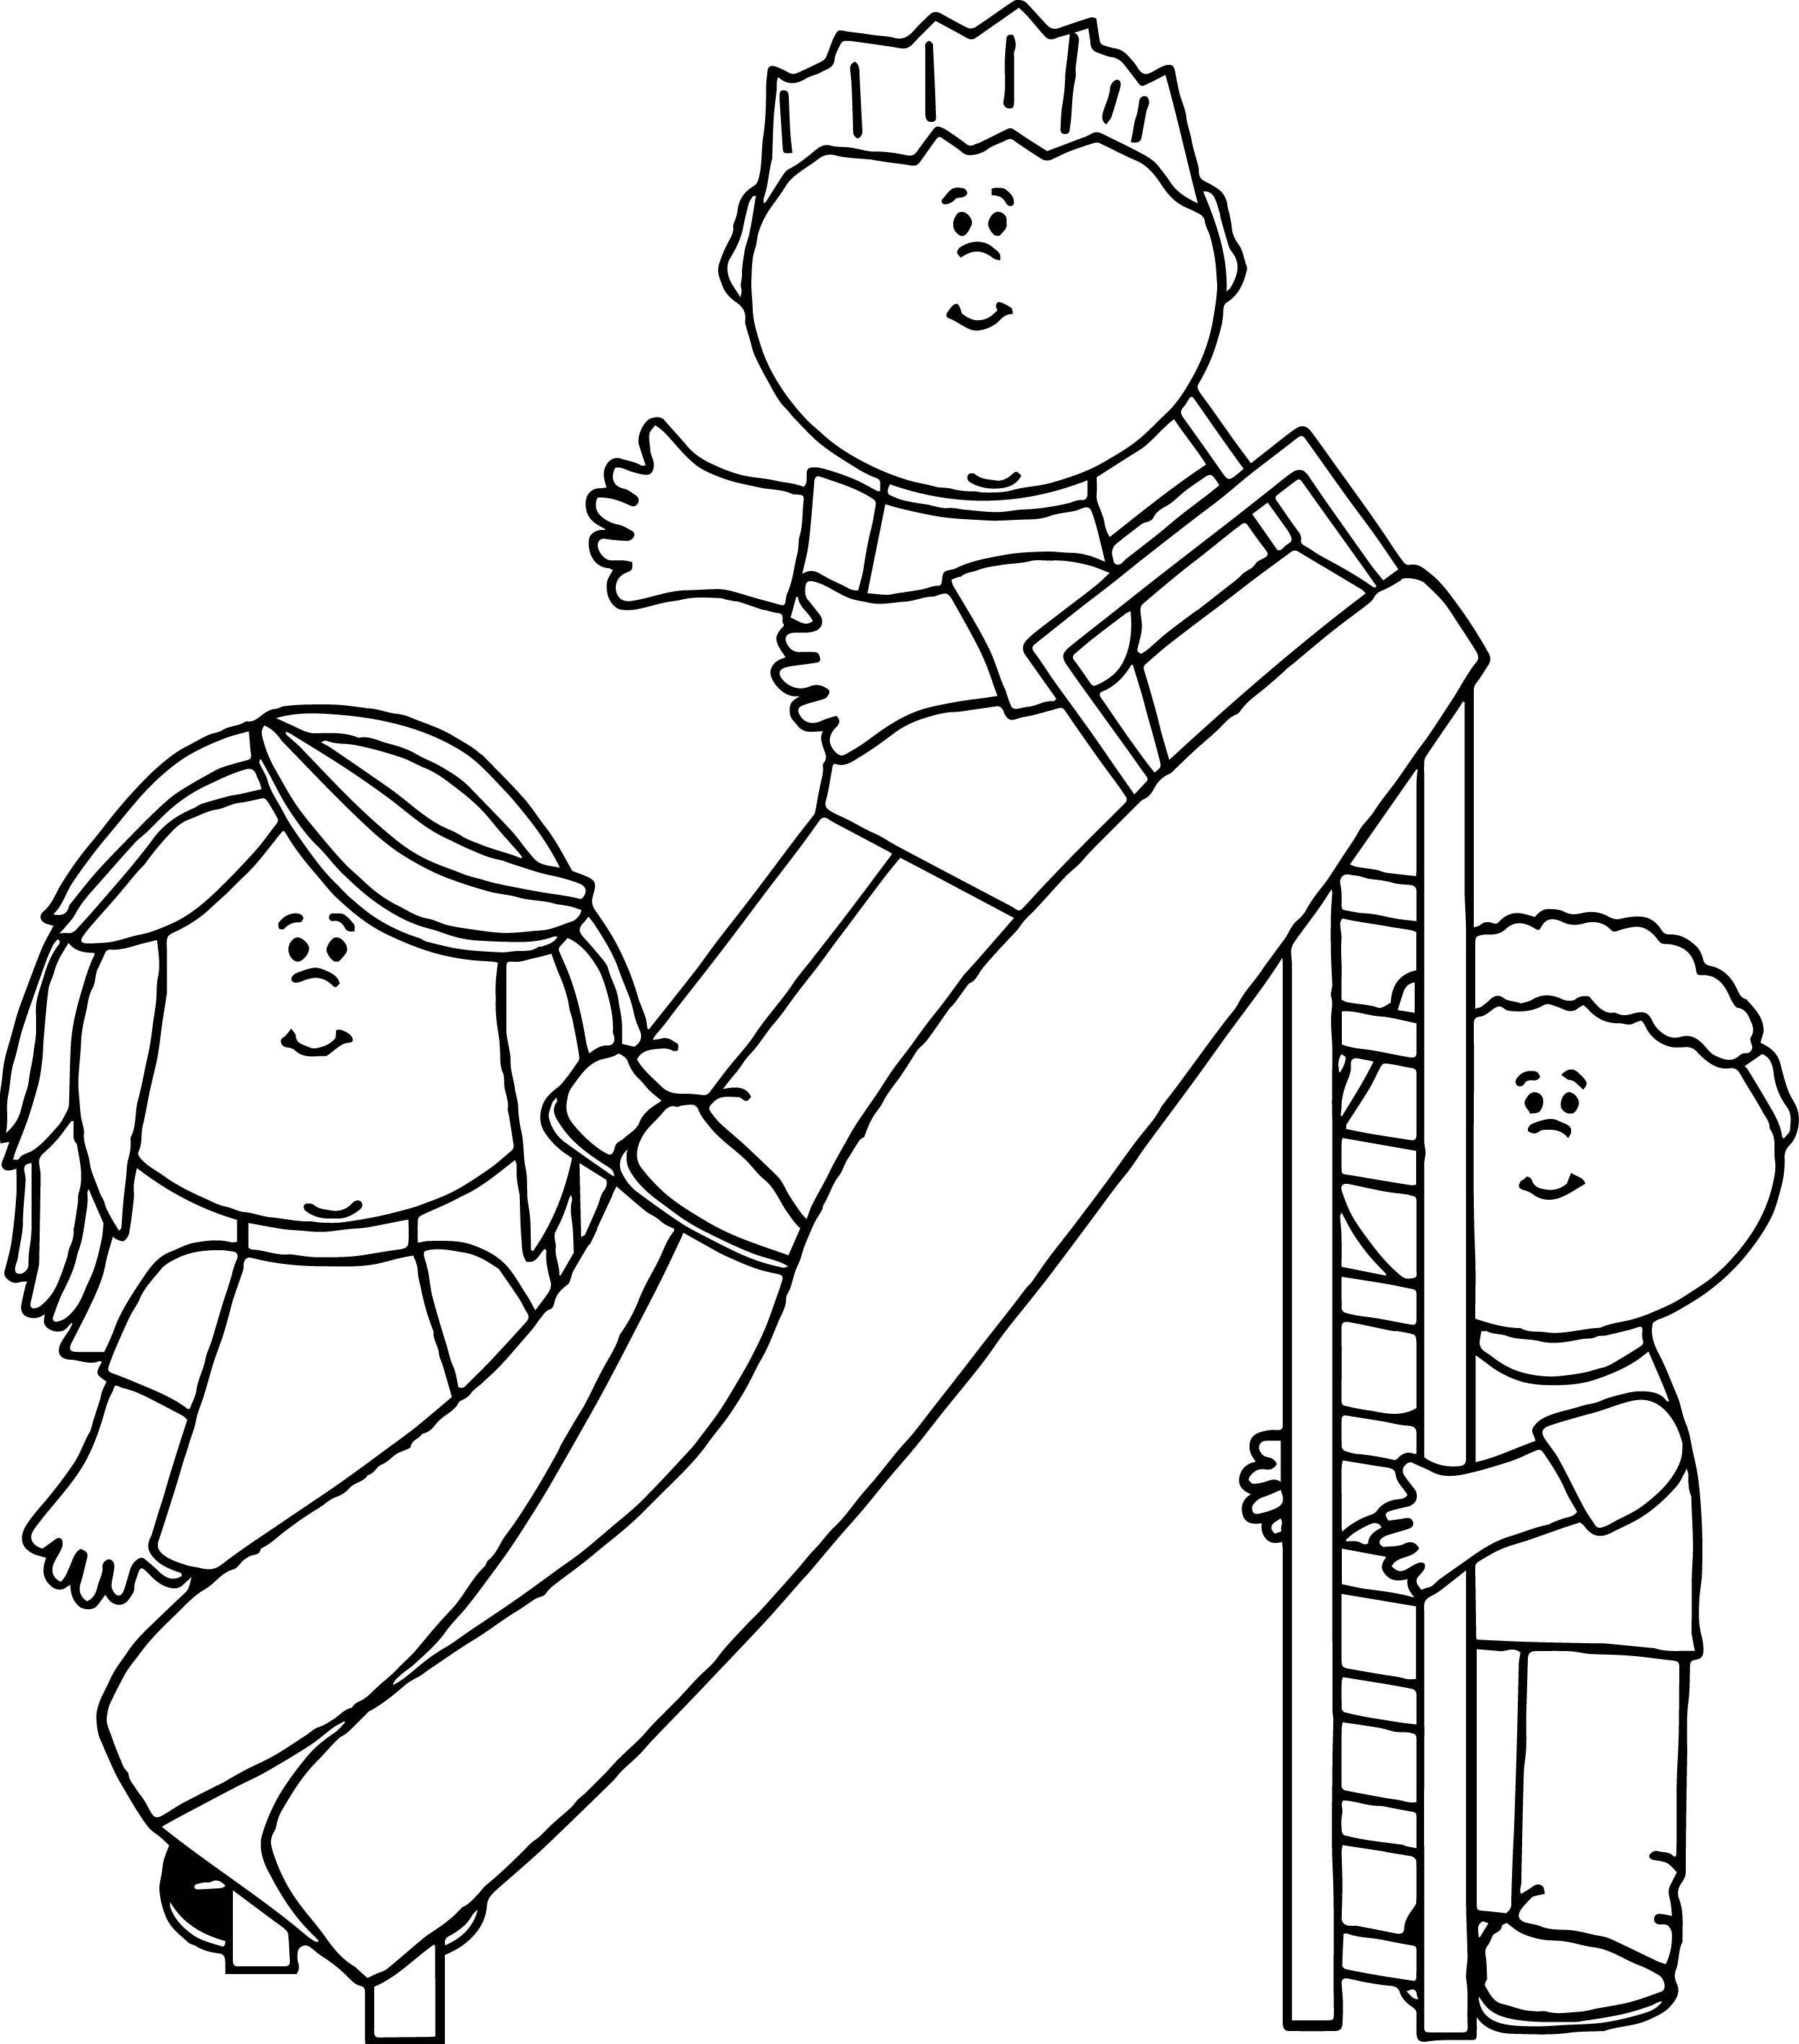 Kids In The Park Coloring Page | Wecoloringpage